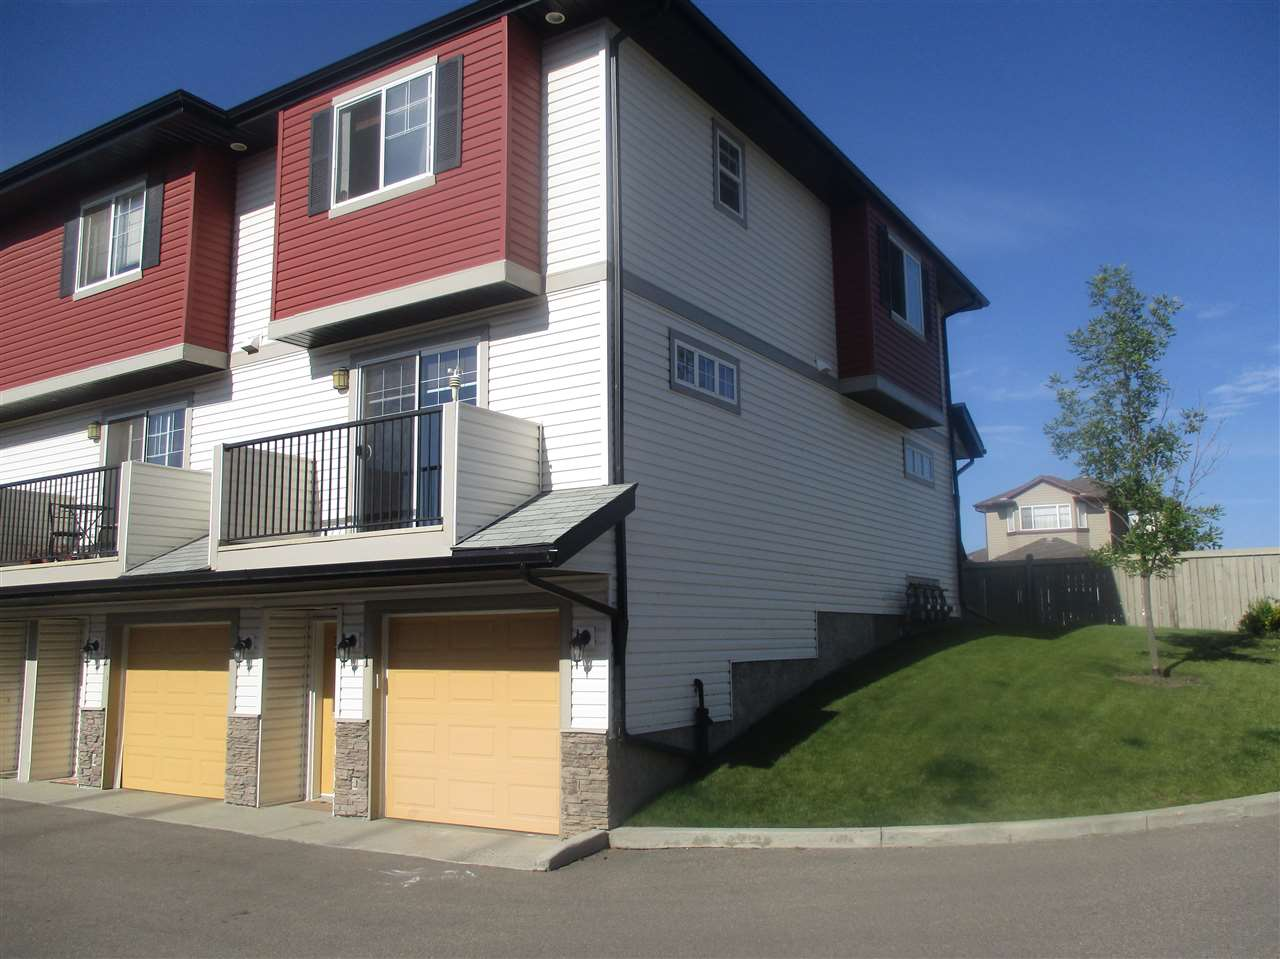 Main Photo: 1 3751 12 Street in Edmonton: Zone 30 Townhouse for sale : MLS® # E4076358